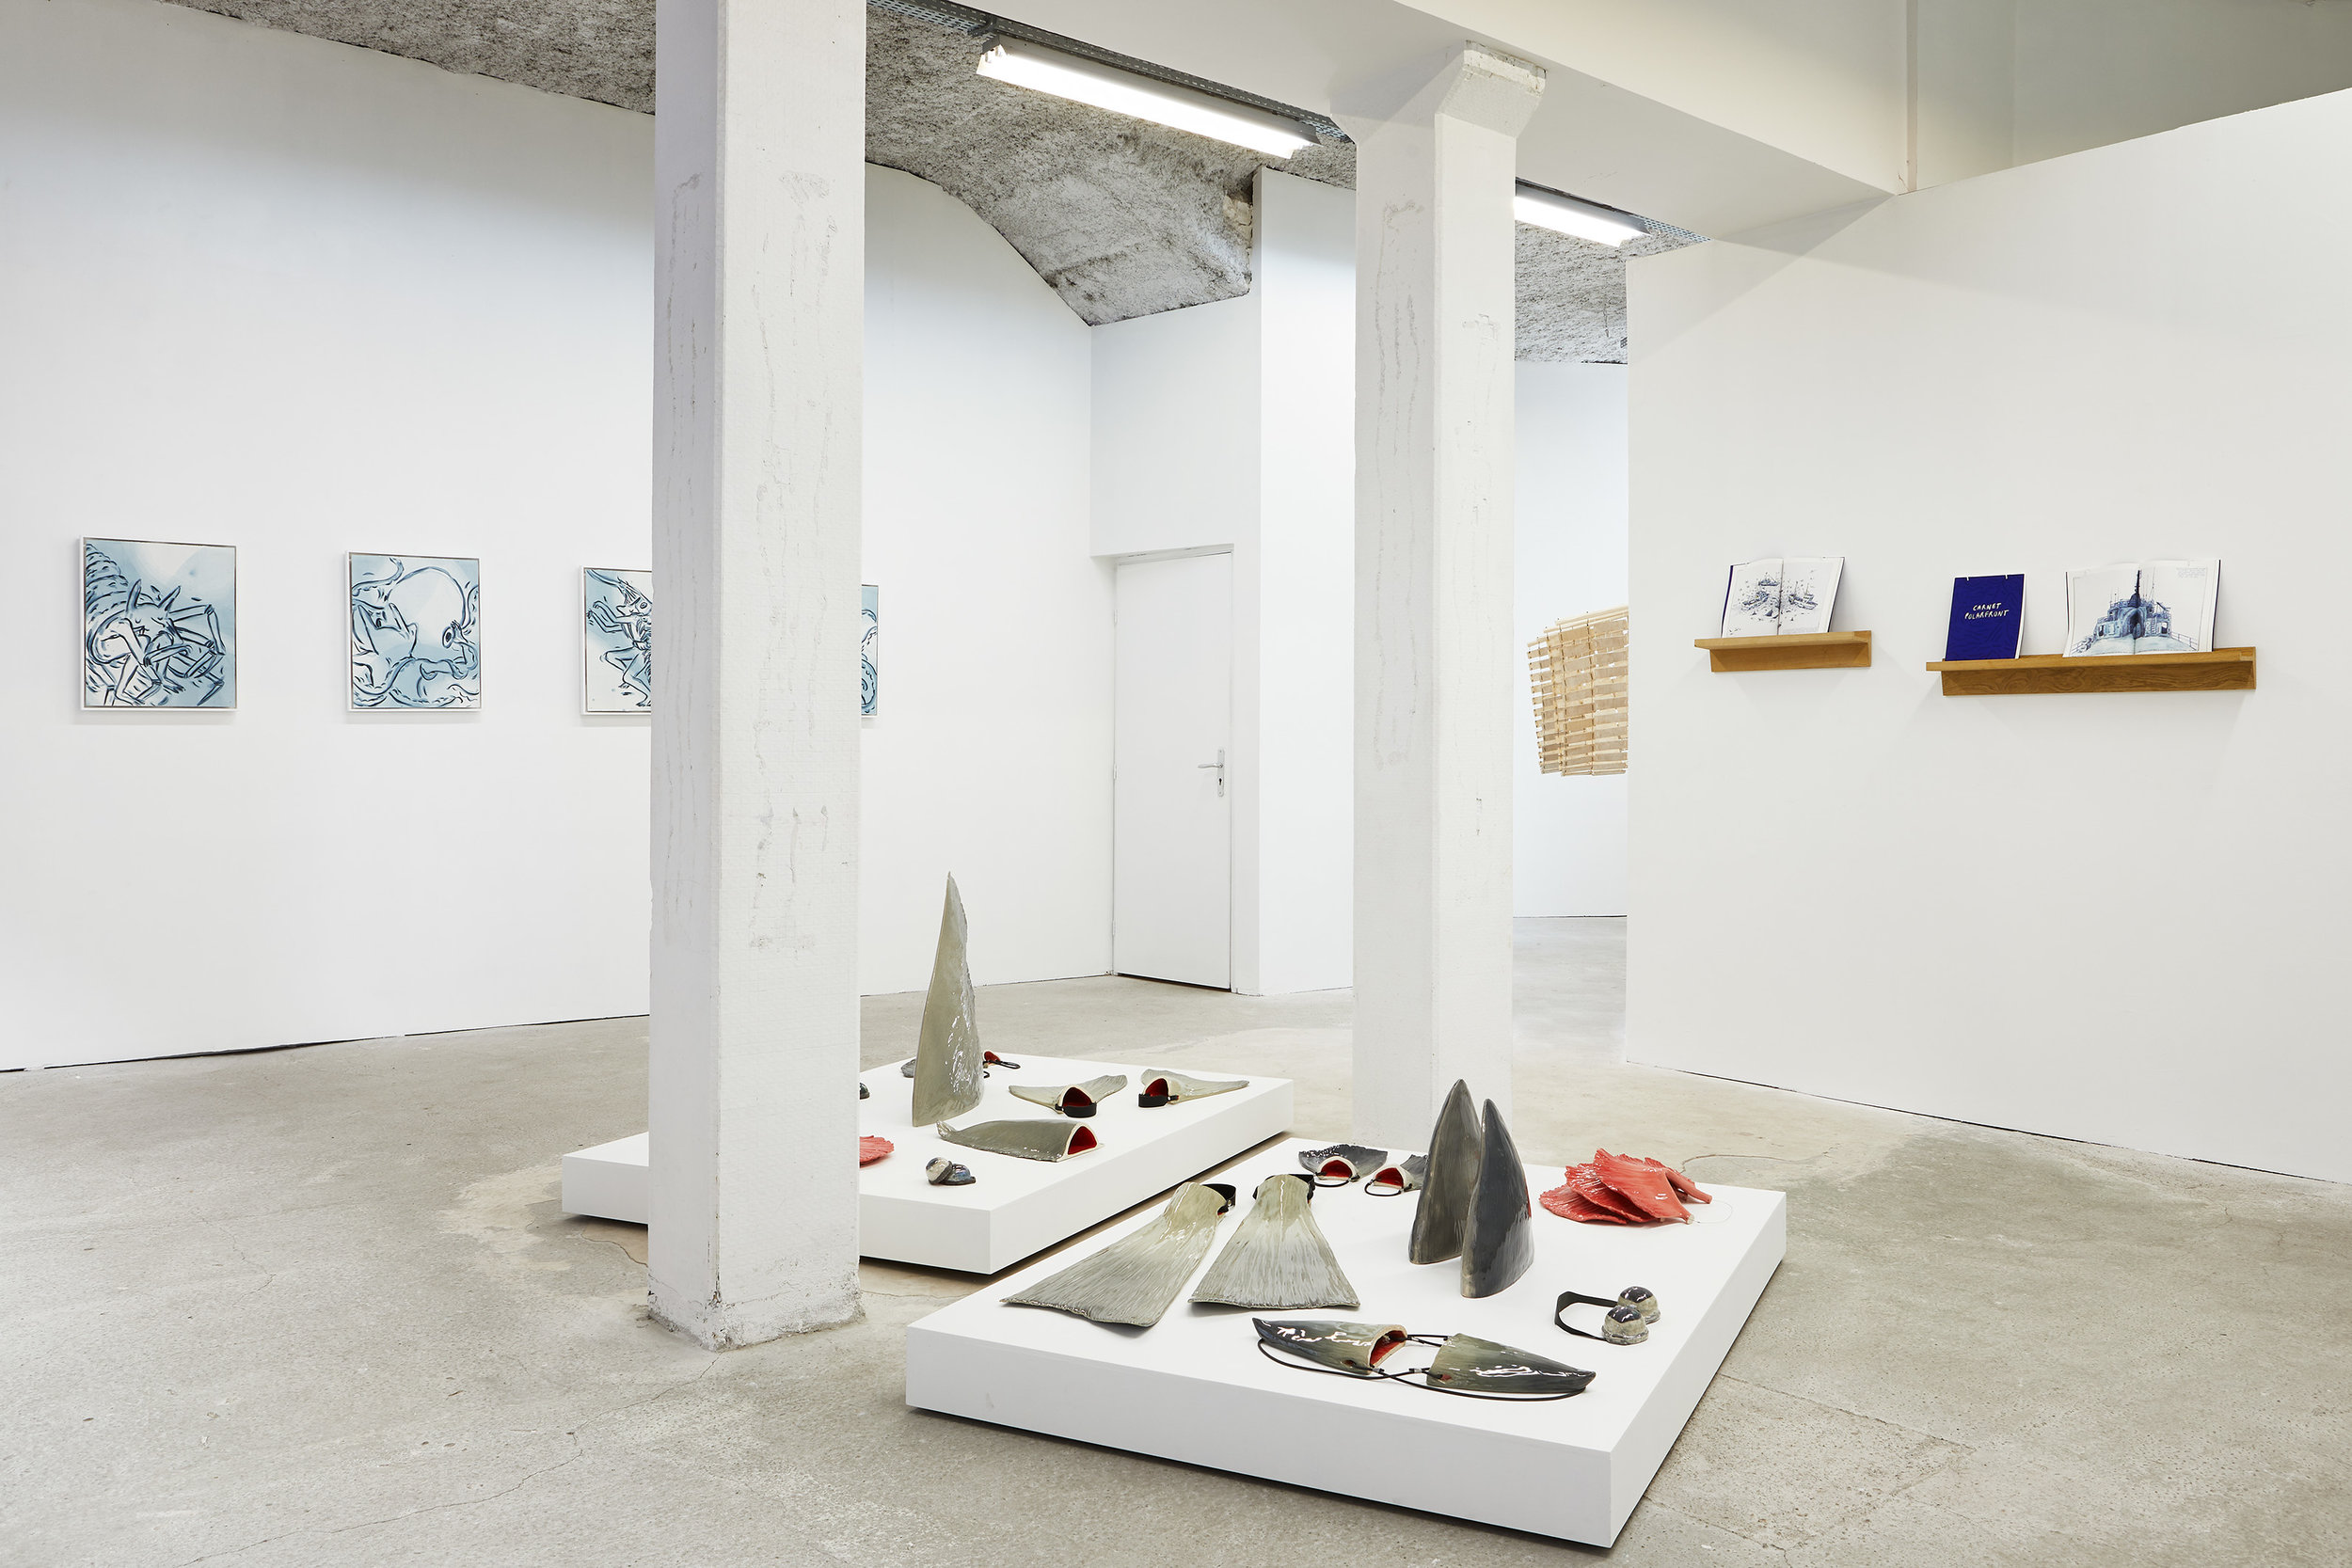 Elsa Guillaume & Forlane 6 Studio,  Amphibie , Bastide Projects, Marseille, exhibition view, 2019